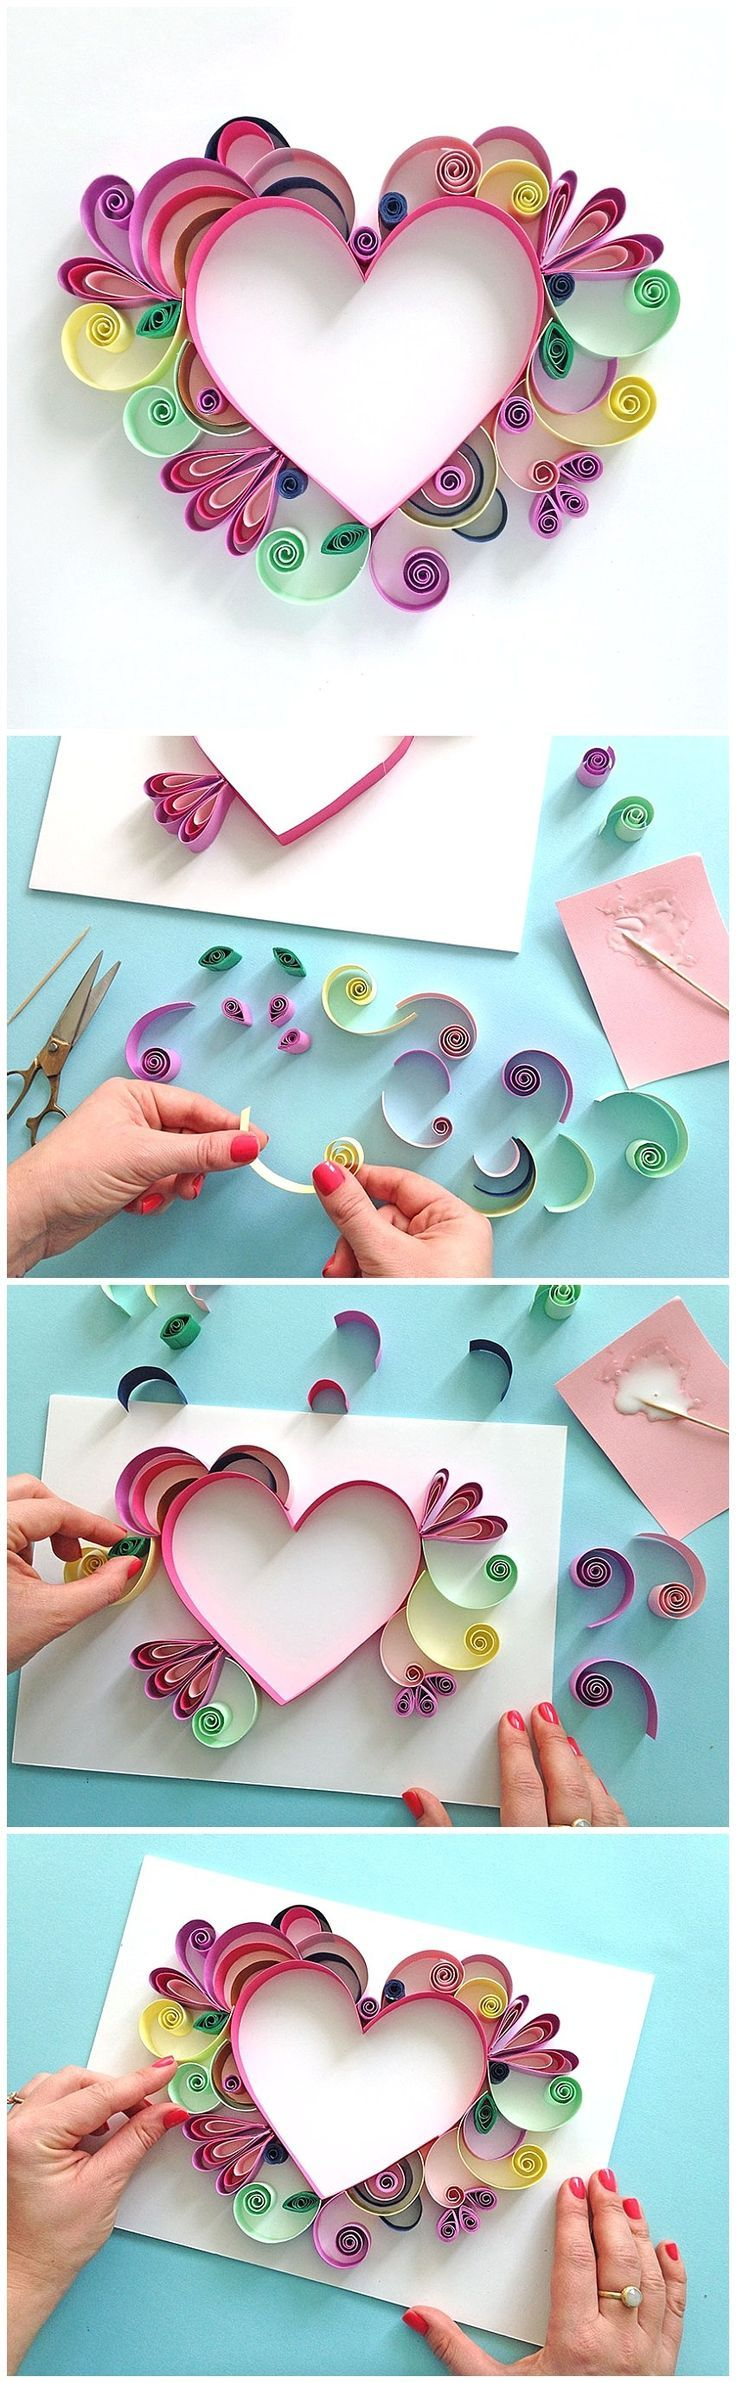 cool Learn How to Quill a darling Heart Shaped Mother's Day Paper Craft Gift Idea...